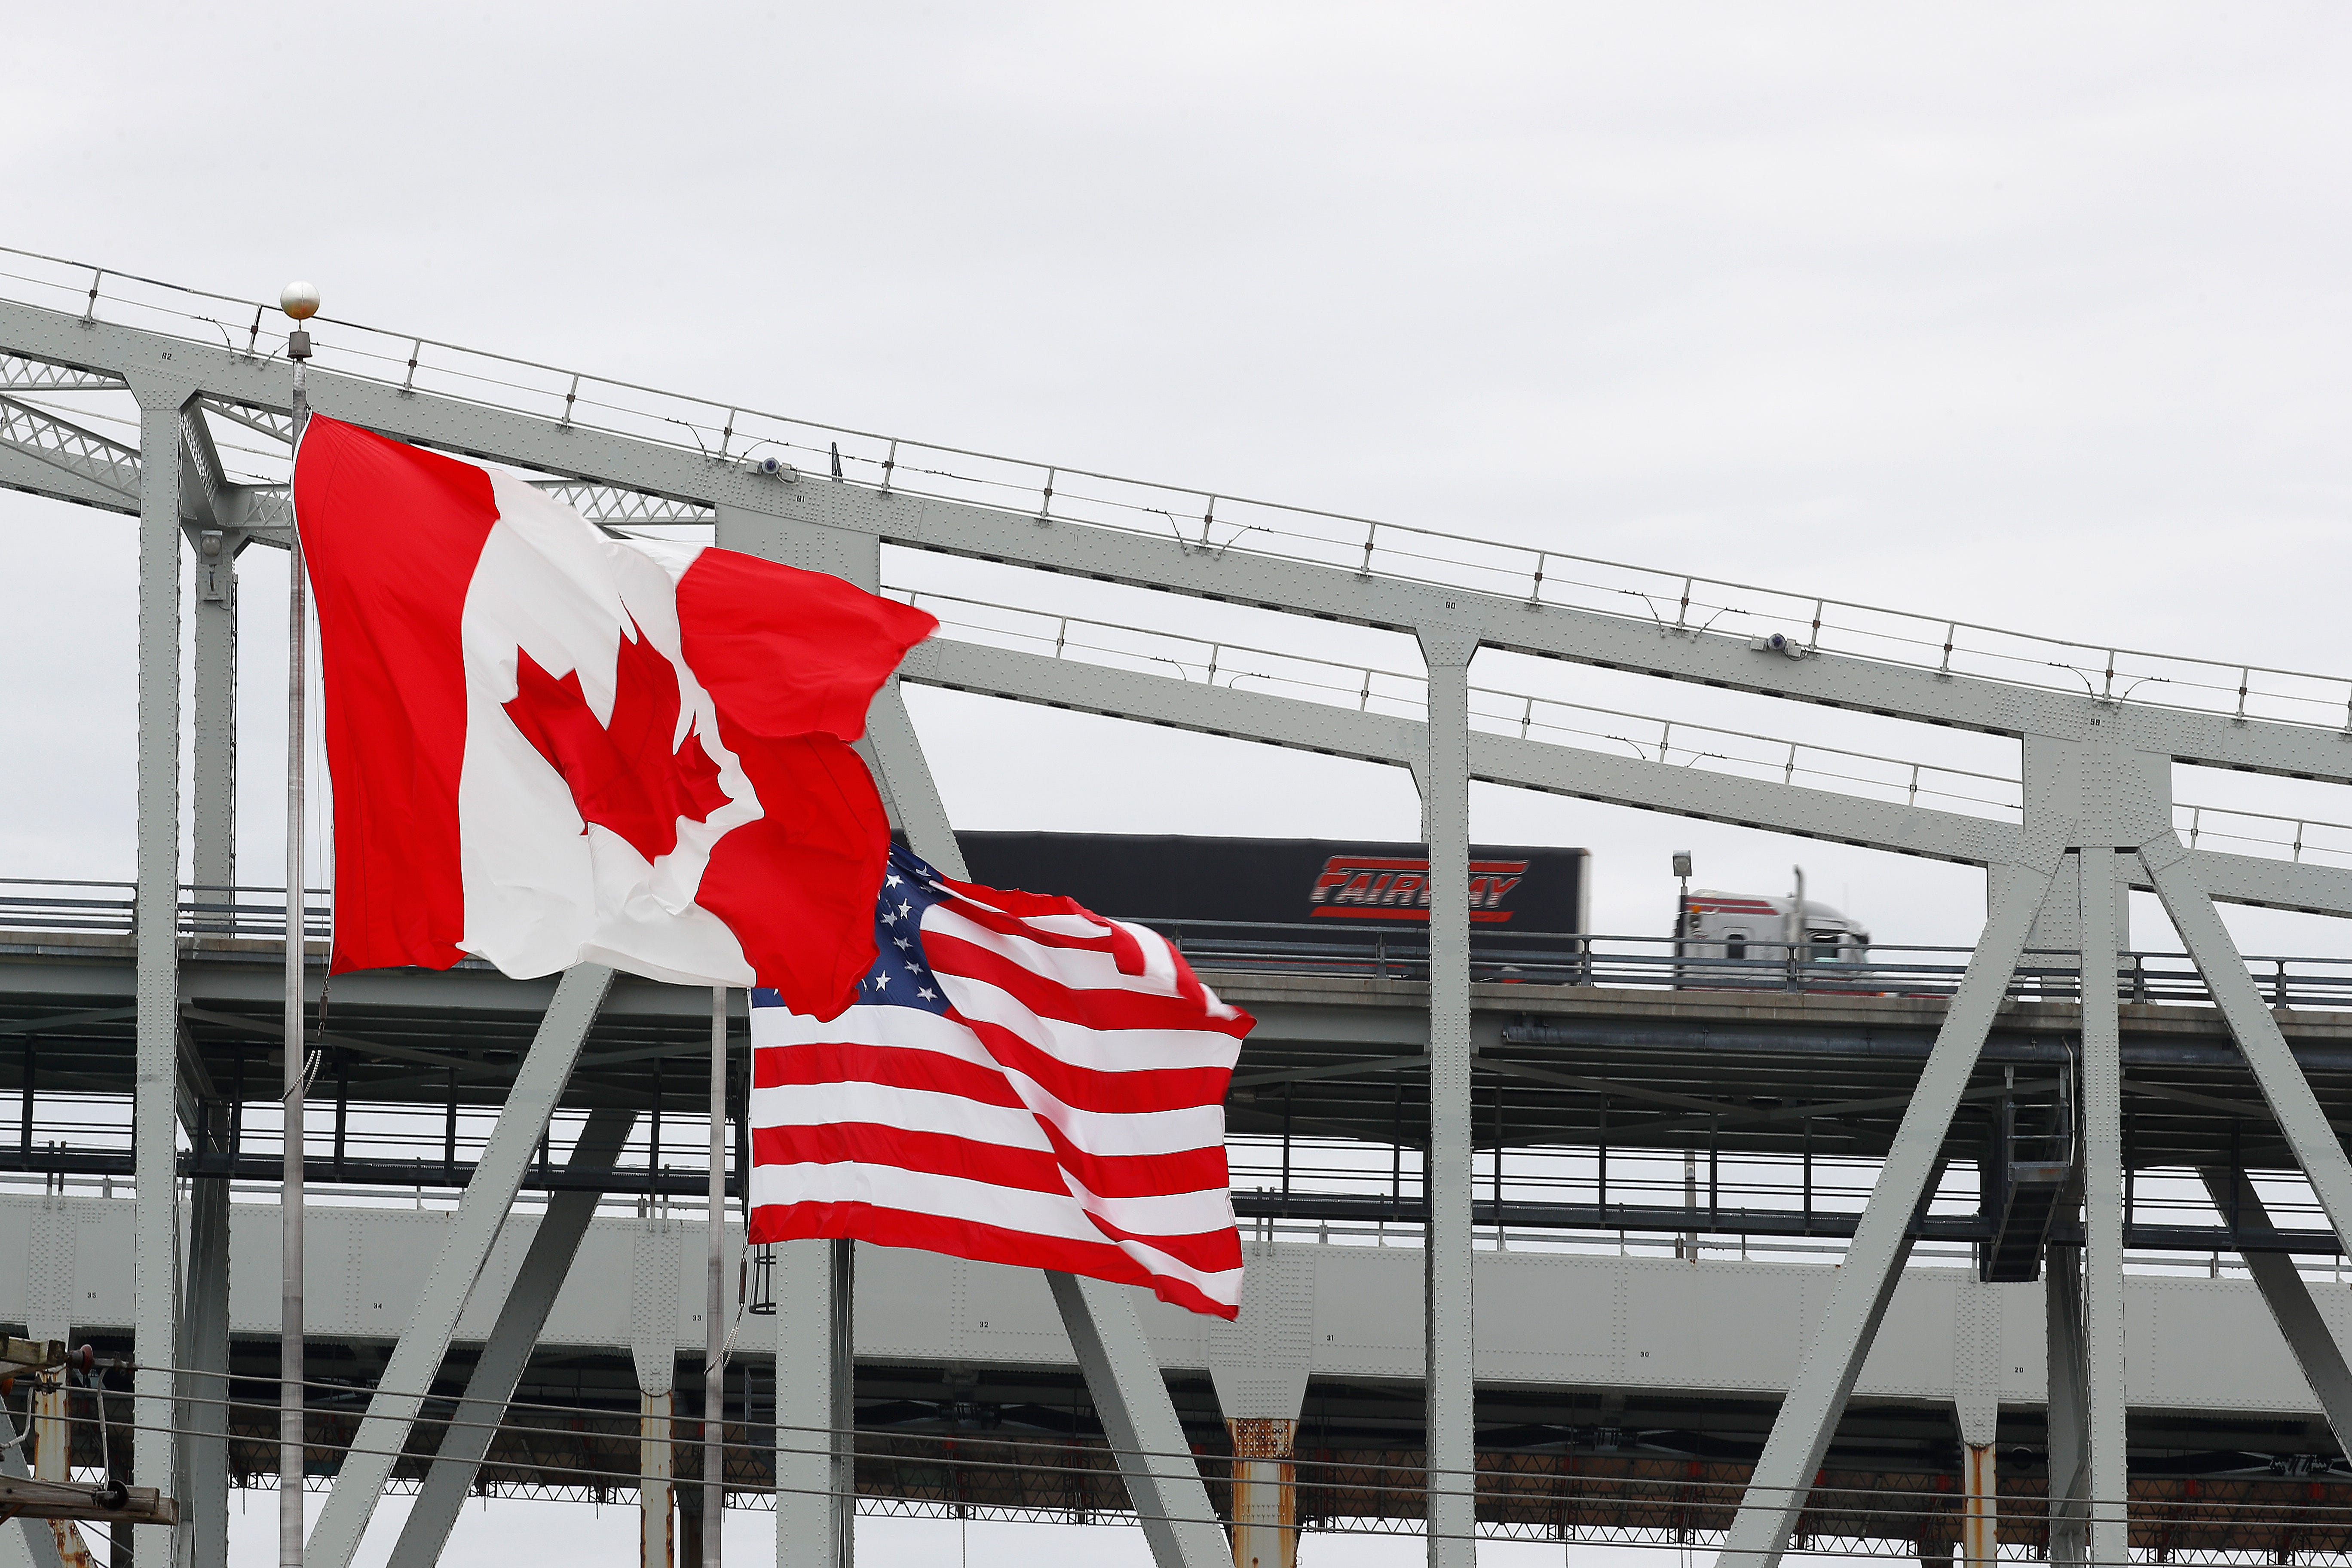 Canada will open its borders to fully vaccinated U.S. travelers on Aug. 9, but travelers will notice a few differences compared to their pre-pandemic travel.